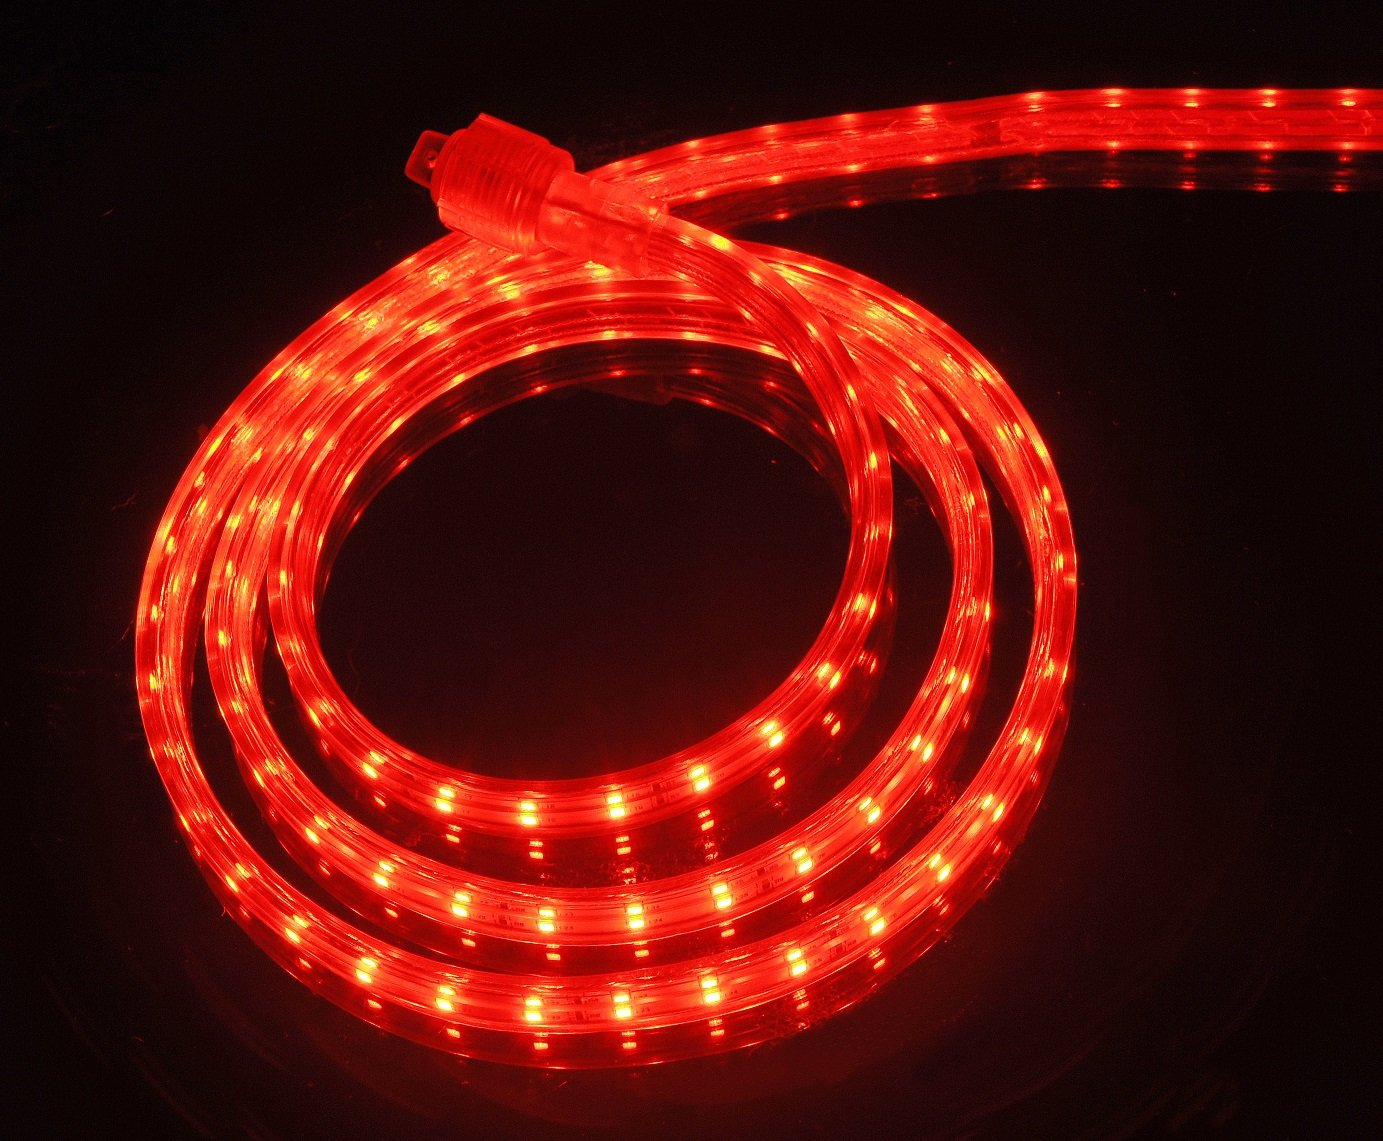 CBConcept UL Listed, 10 Feet, 1080 Lumen, 3000K Warm White, Dimmable, 110-120V AC Flexible Flat LED Strip Rope Light, 180 Units 3528 SMD LEDs, Indoor/Outdoor Use, Accessories Included, [Ready to use] 120VSMD3528-3M-WW